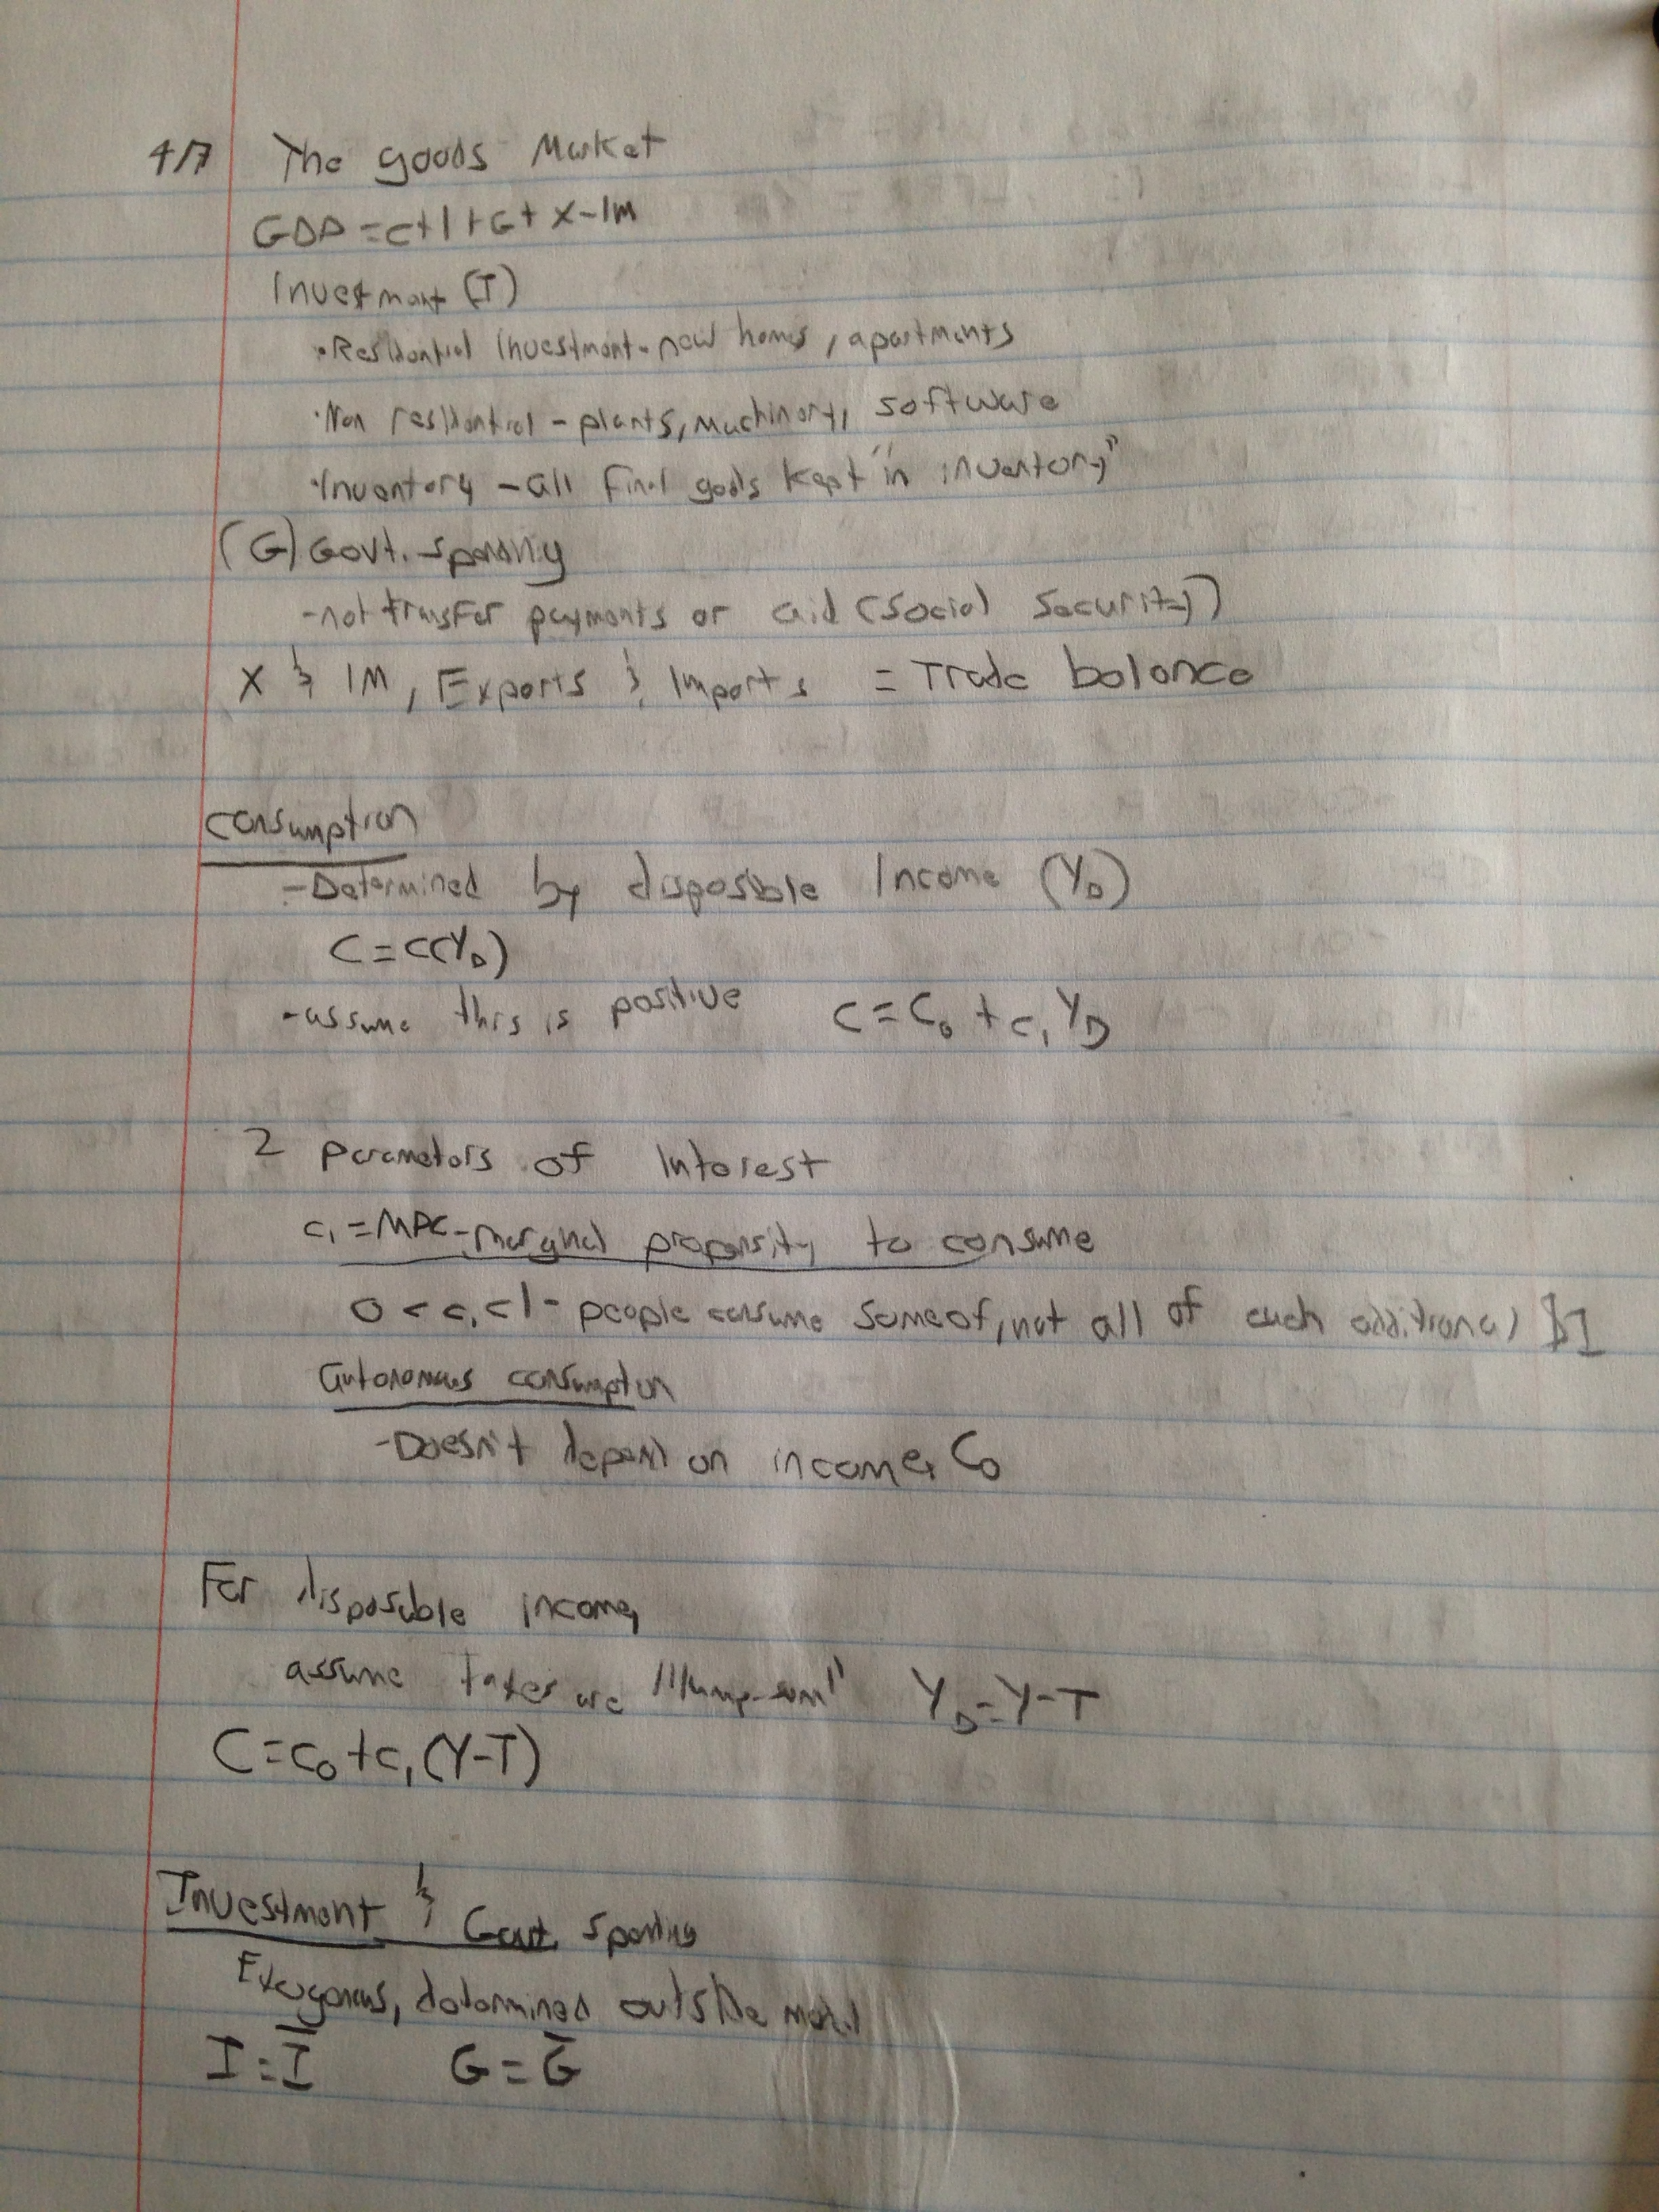 ECON 313 - Class Notes - Week 2